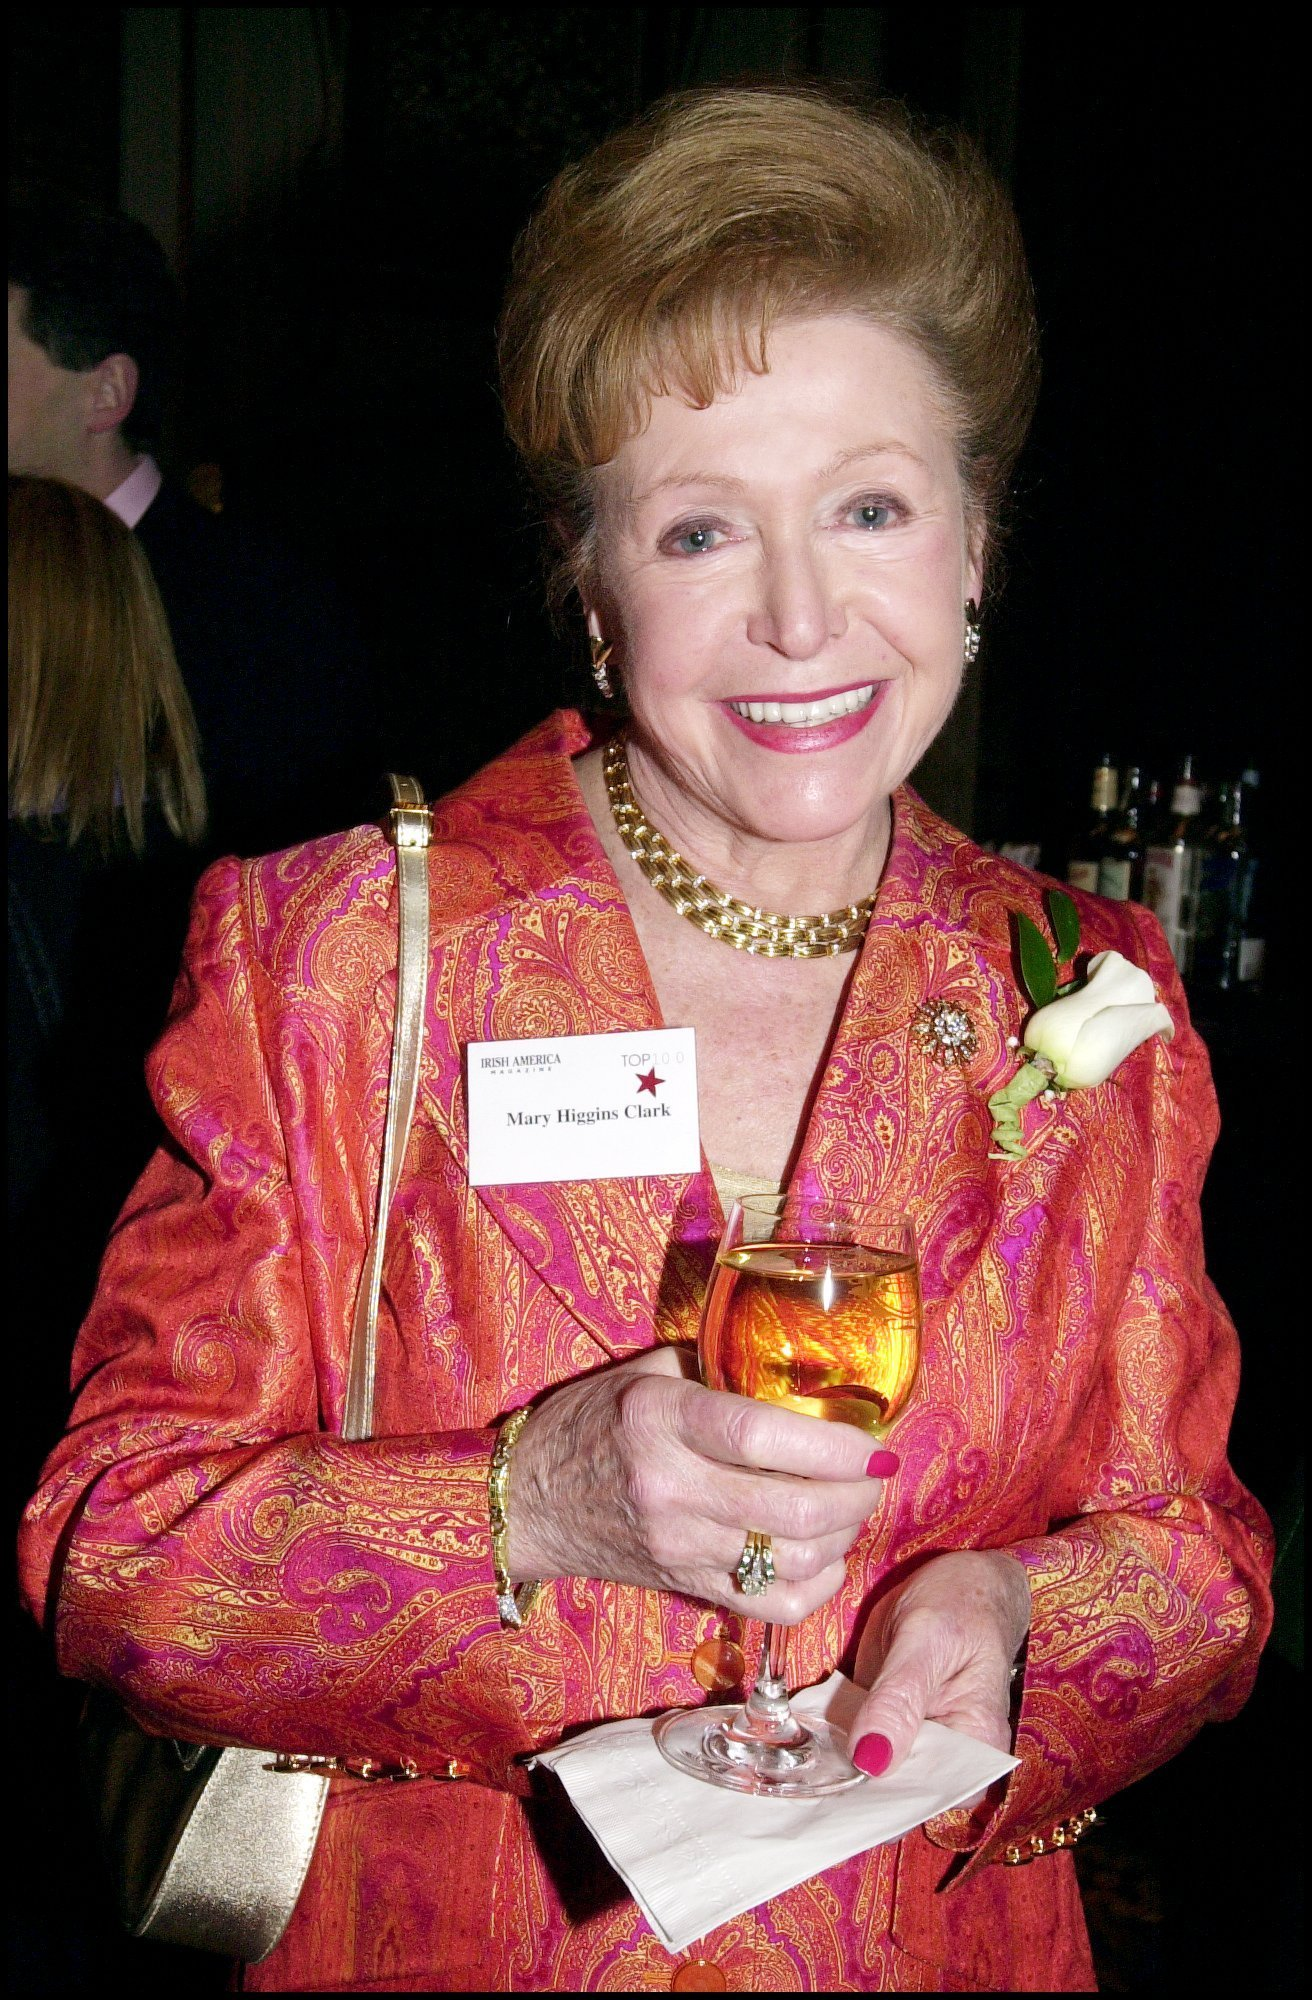 Mary Higgins Clark at  the16th annual Irish America top 100 gala at the Plaza Hotel in New York City | Photo: David LEFRANC/Gamma-Rapho via Getty Images